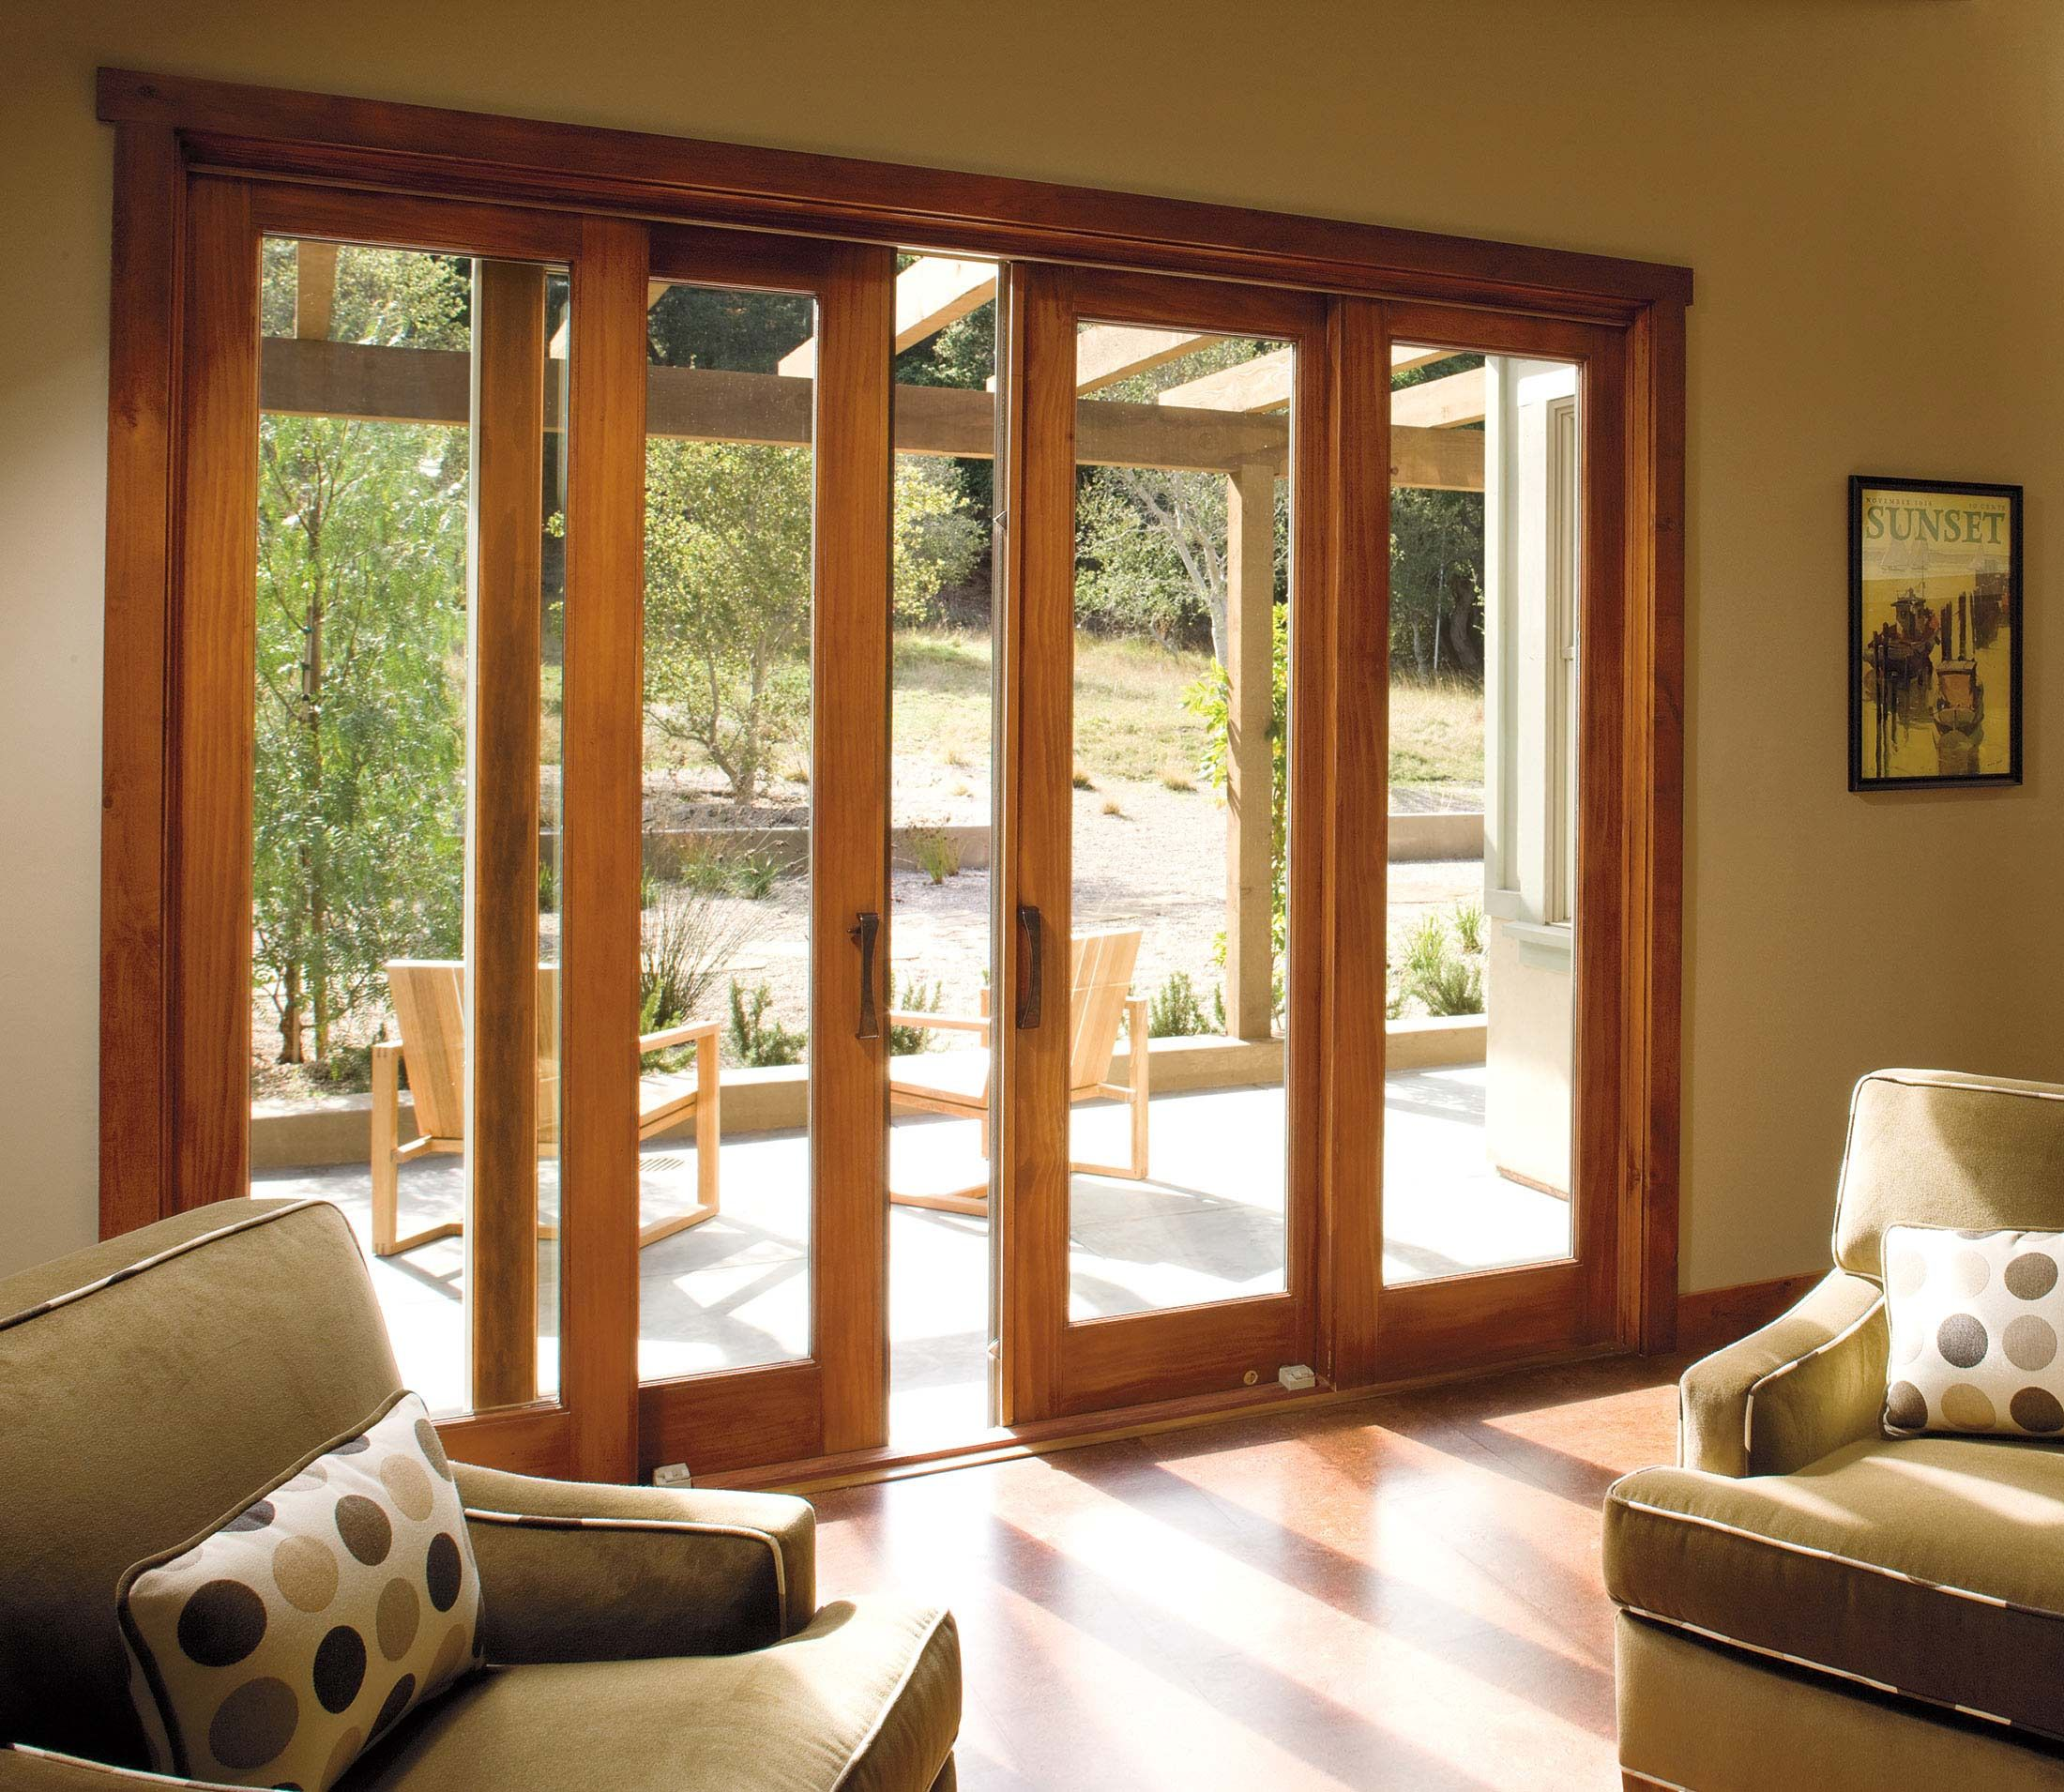 Sliding doors in living room but with another set of sliding doors replace french door w architect series sliding patio door eventelaan Image collections